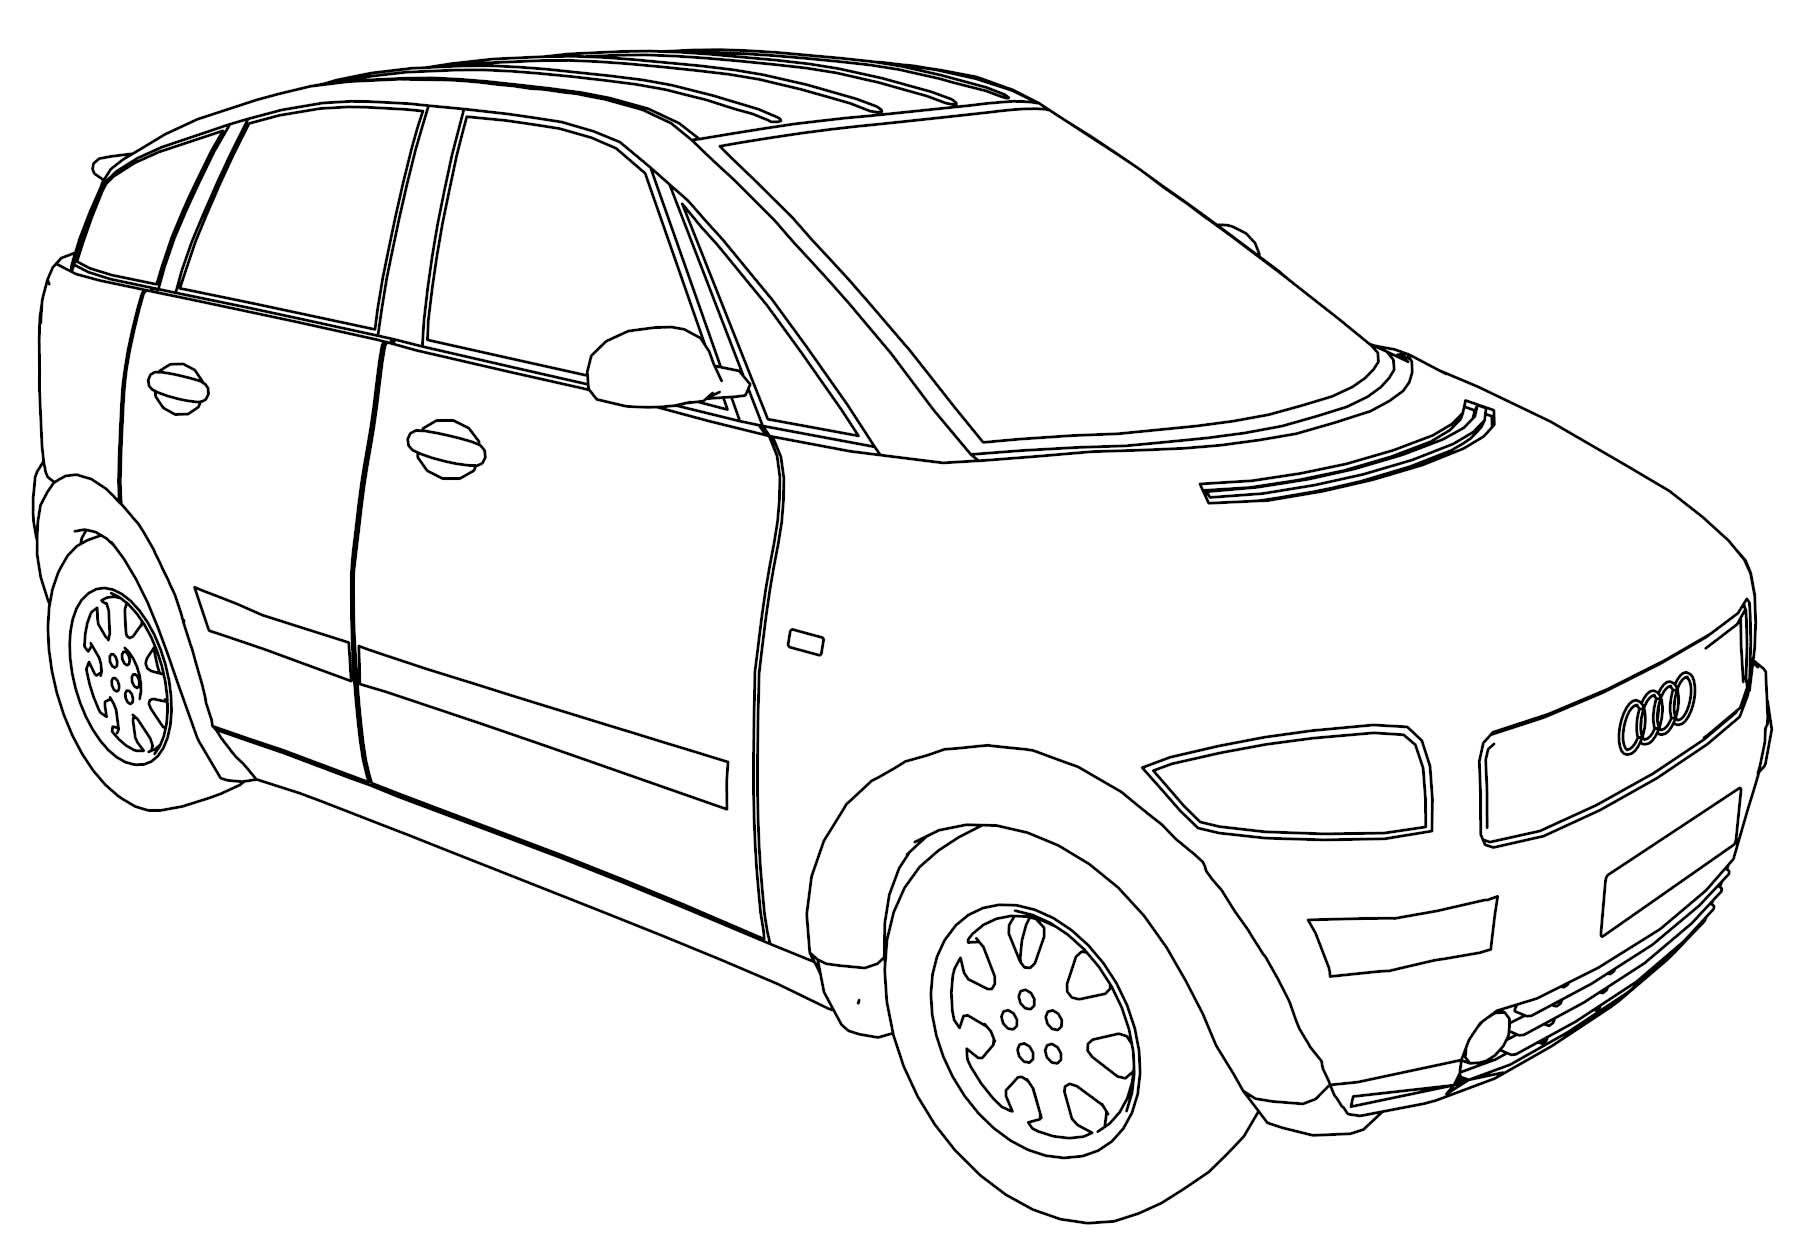 Audi A2 Car Coloring Page | Wecoloringpage.com